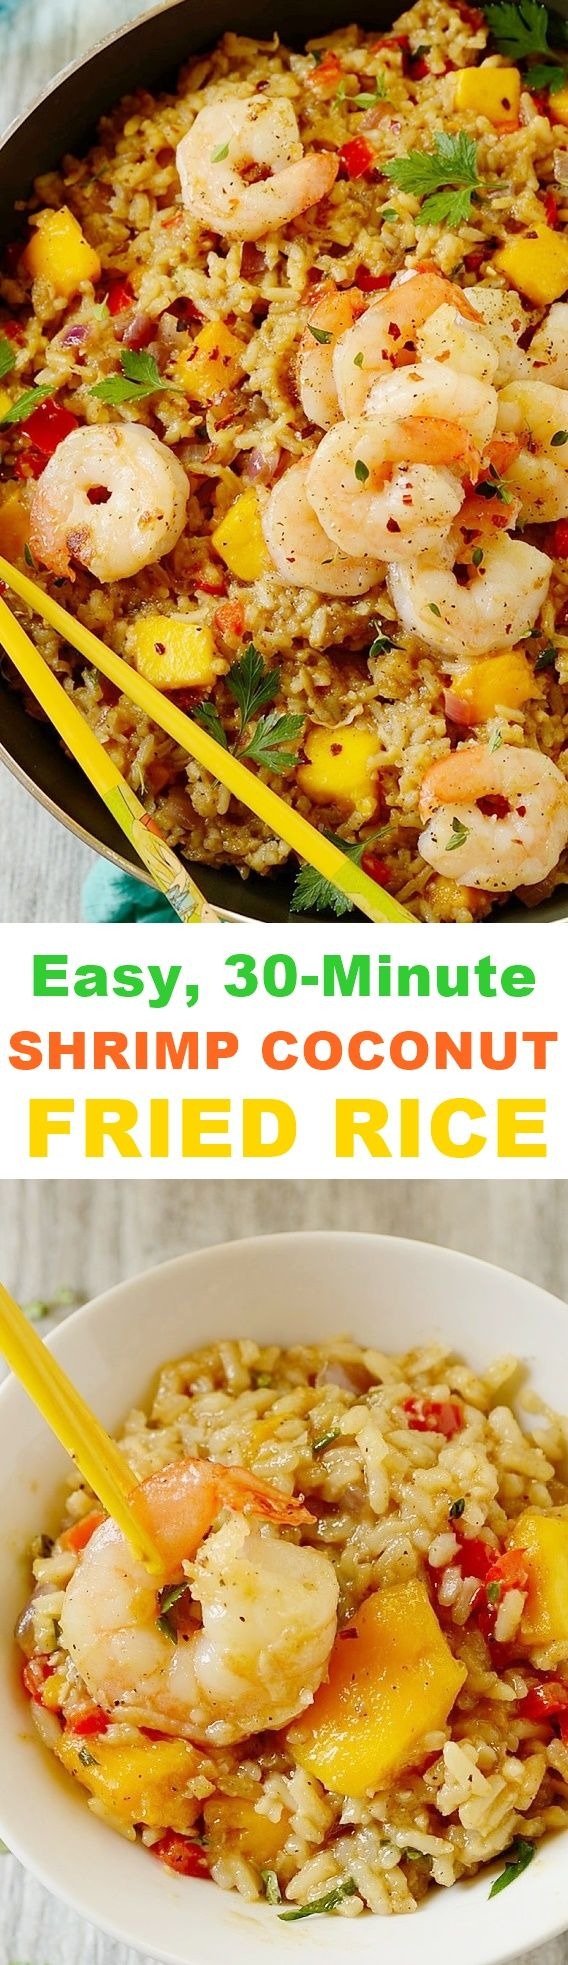 Shrimp Coconut Fried Rice -- quick and easy to make and perfect as a weeknight meal.